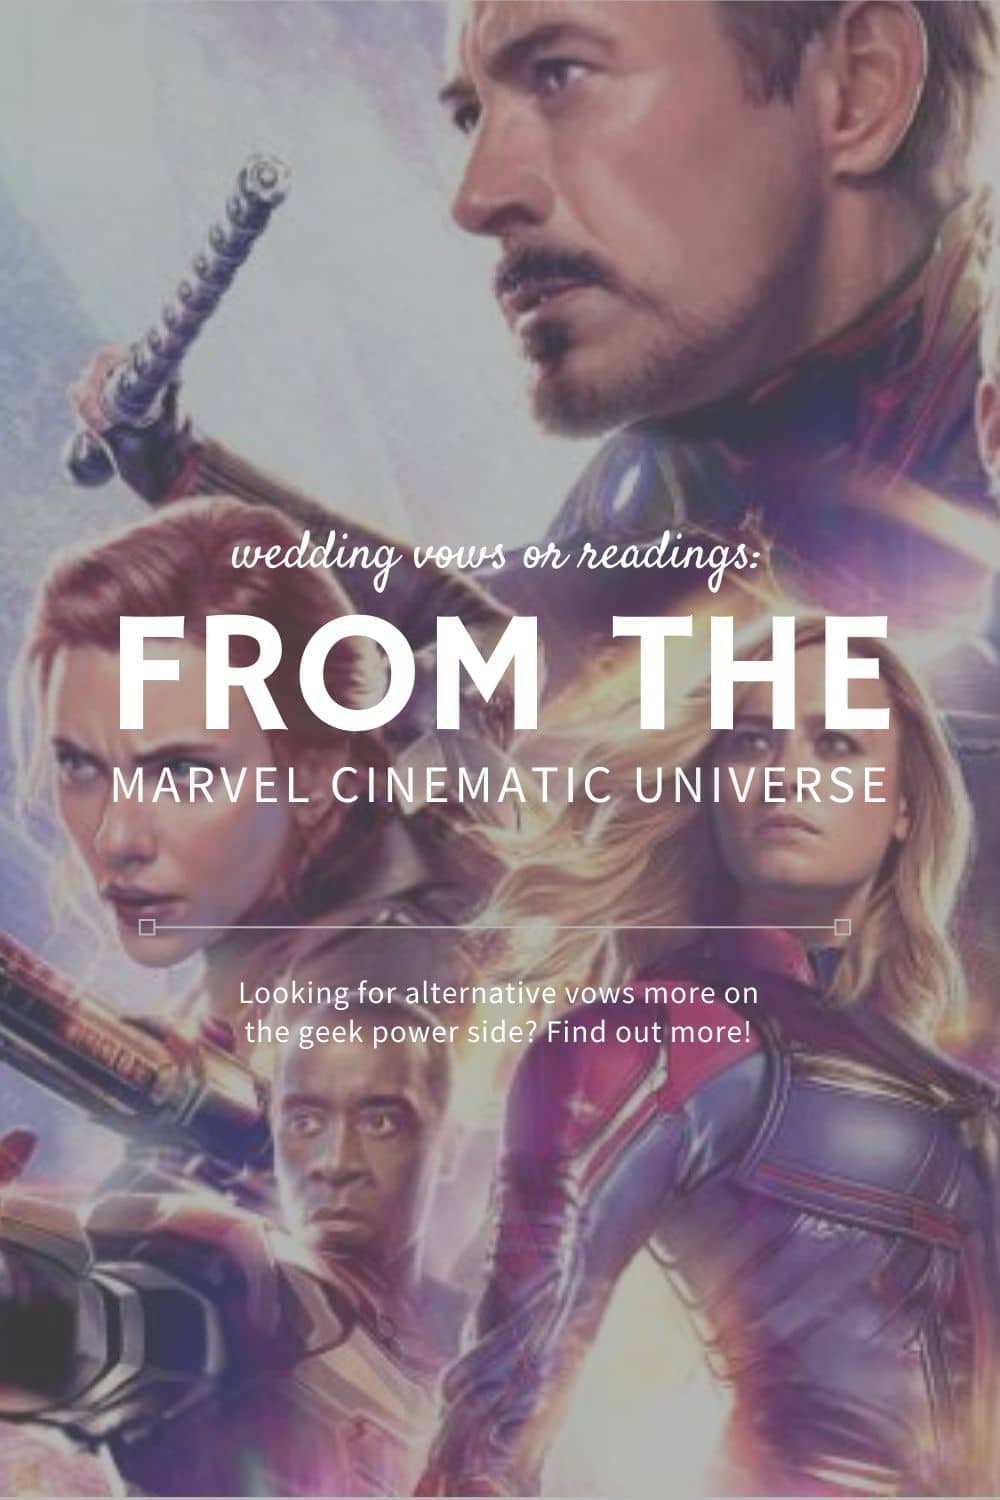 Looking for alternative vows that are more on the geek power side? Well, Alaskan lifestyle blogger, Kiss My Tulle, is sharing alternative wedding vows and readings from the Marvel Cinematic Universe! Find out more!